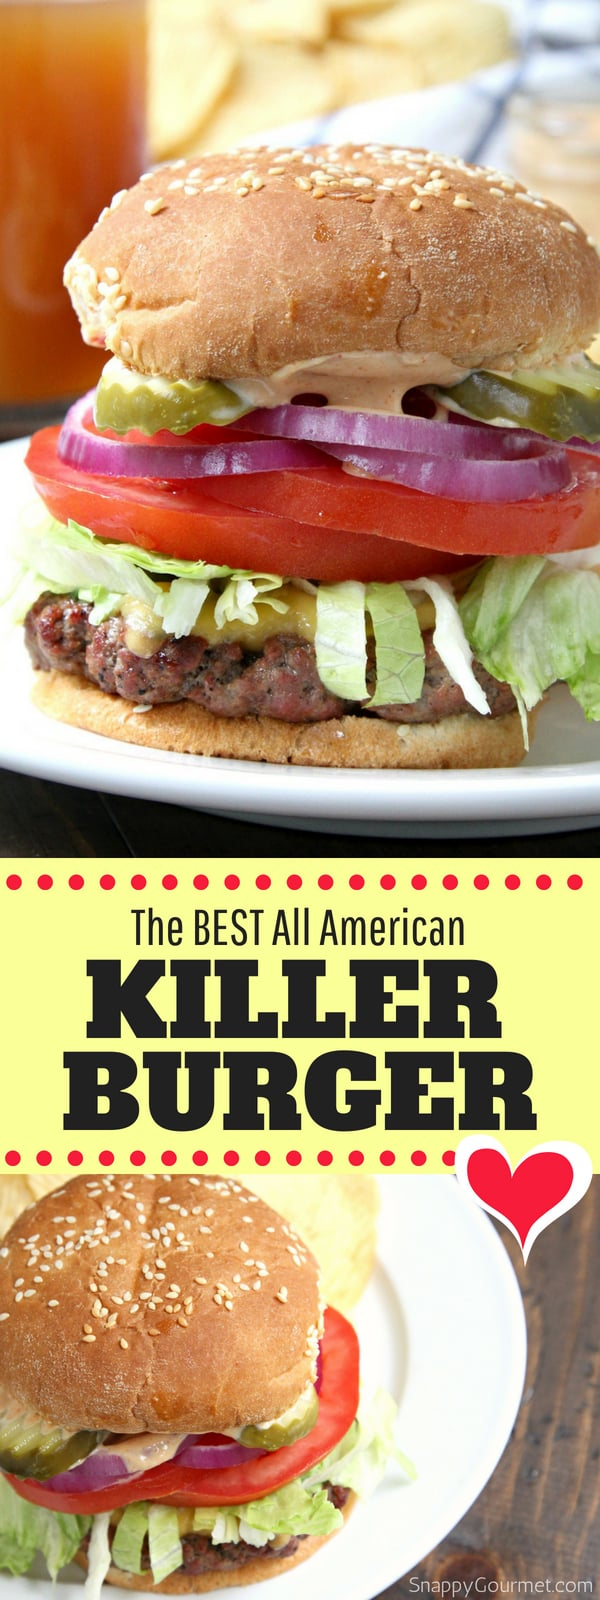 Killer Burger - the best recipes for an All American burger with secret sauce and fresh toppings